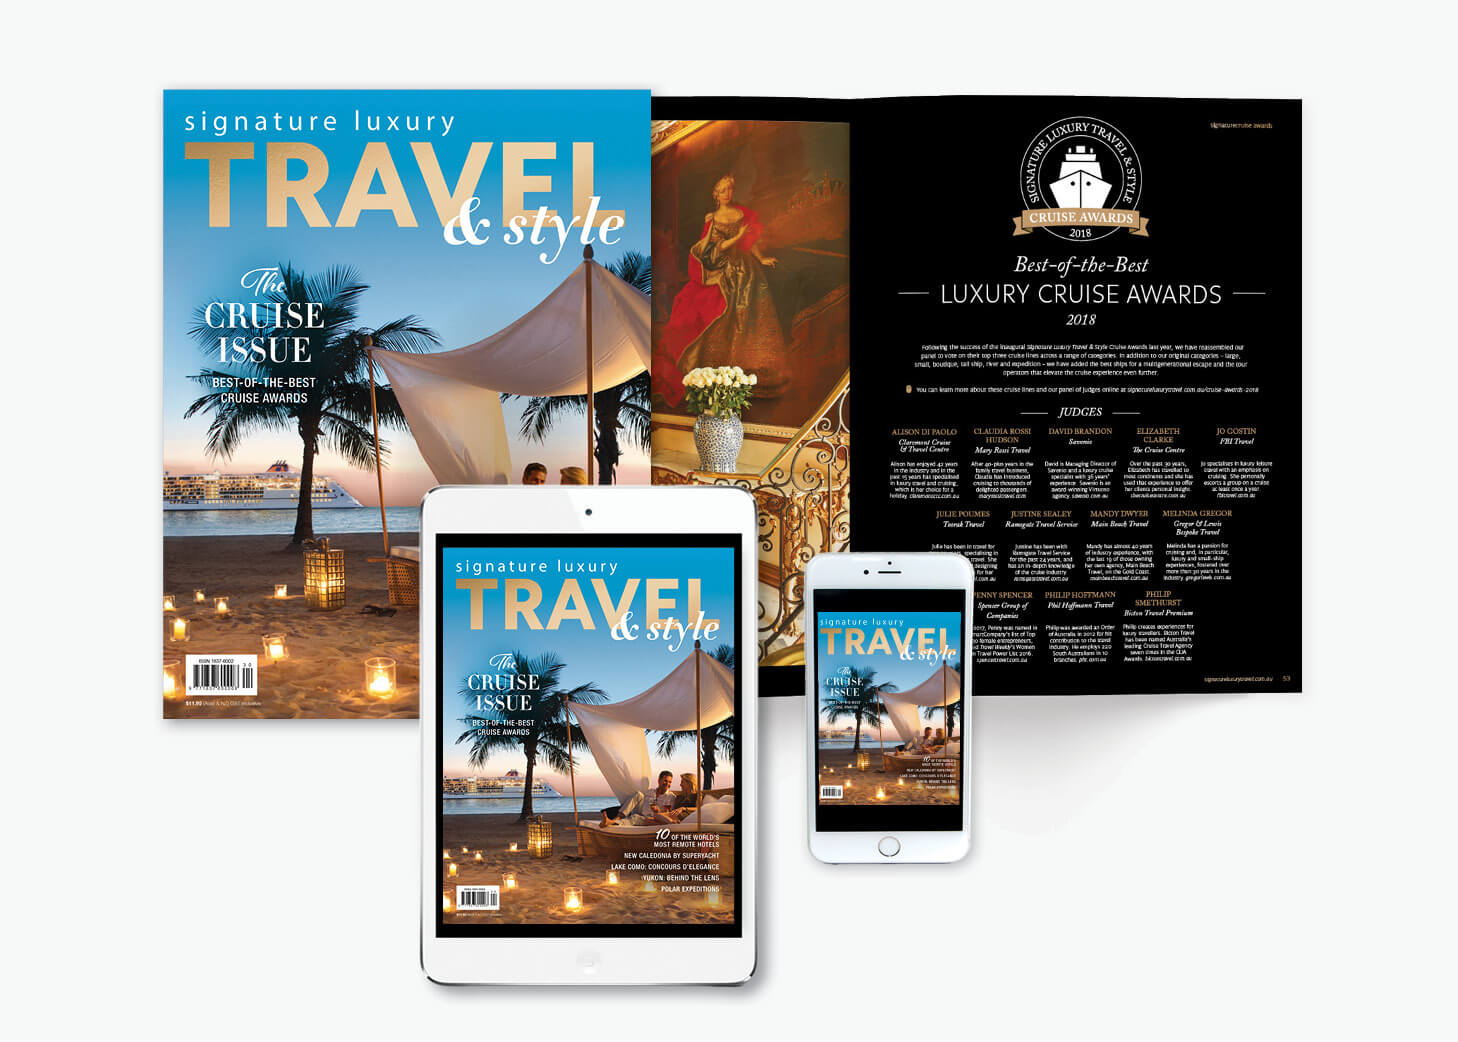 subscribe Signature Luxury Travel & Style